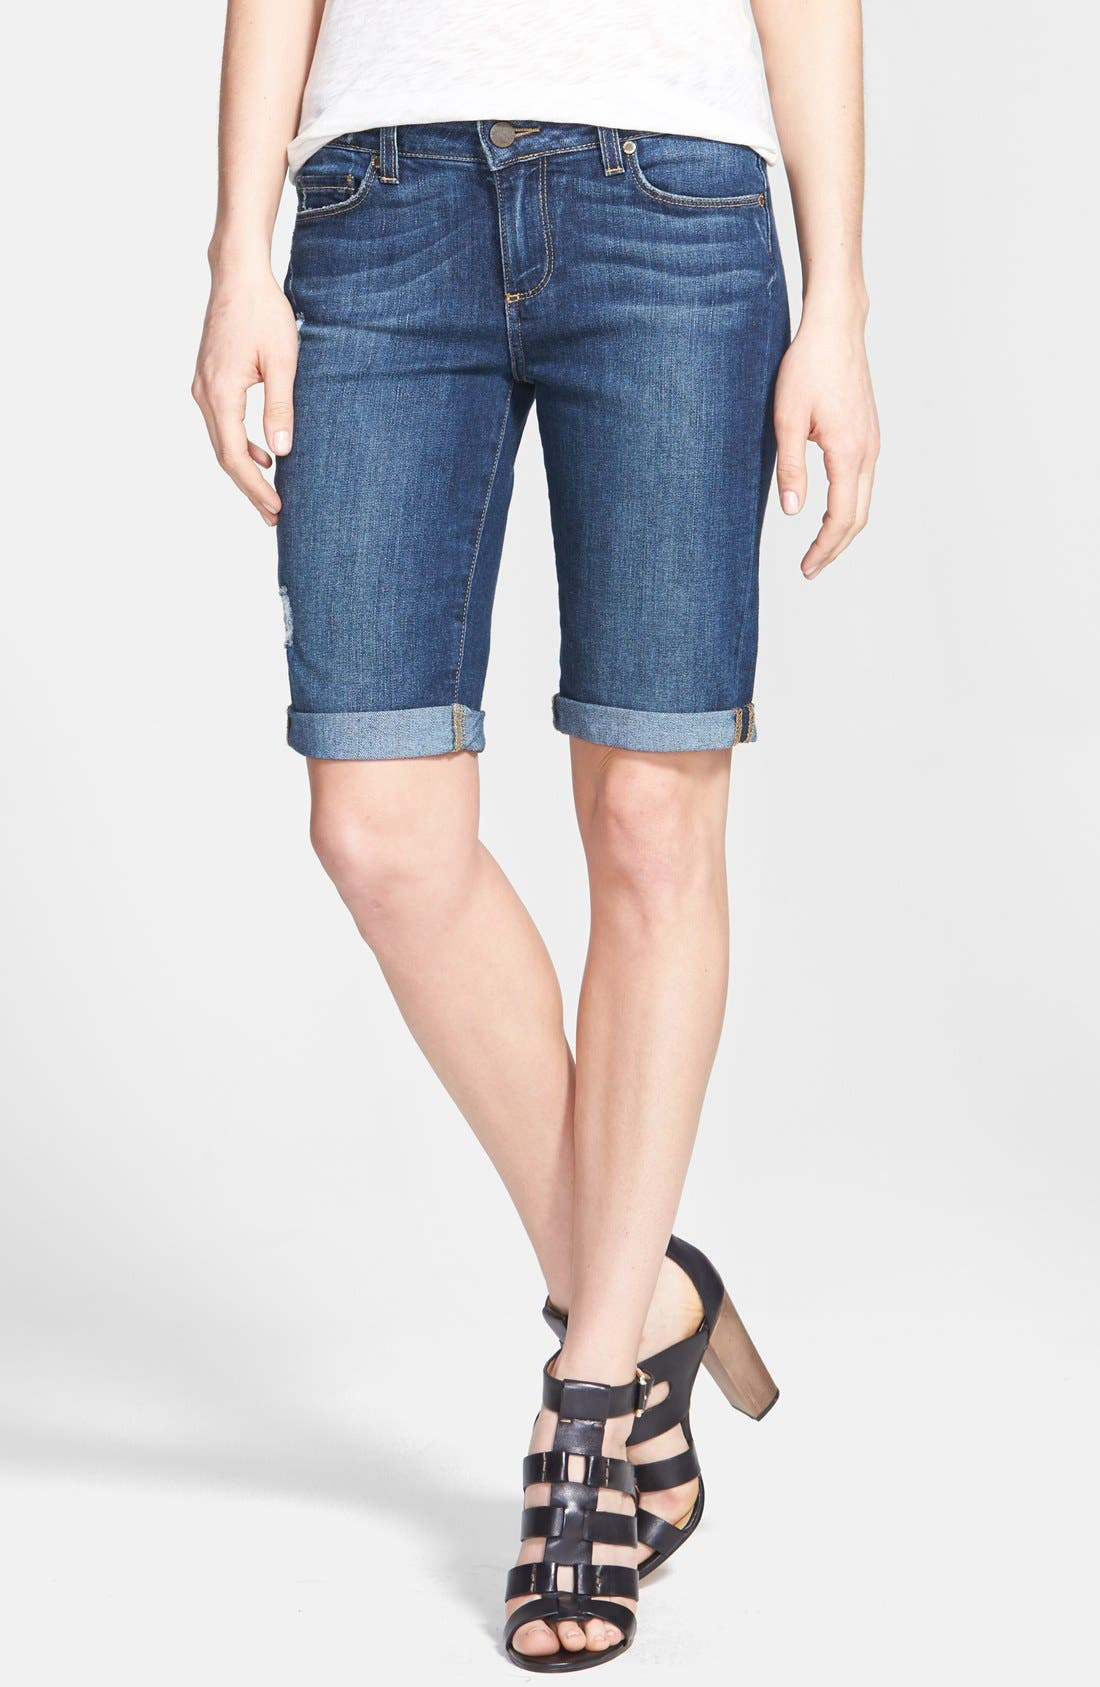 Alternate Image 1 Selected - Paige Denim 'Jax' Cuffed Denim Knee Shorts (Luca)